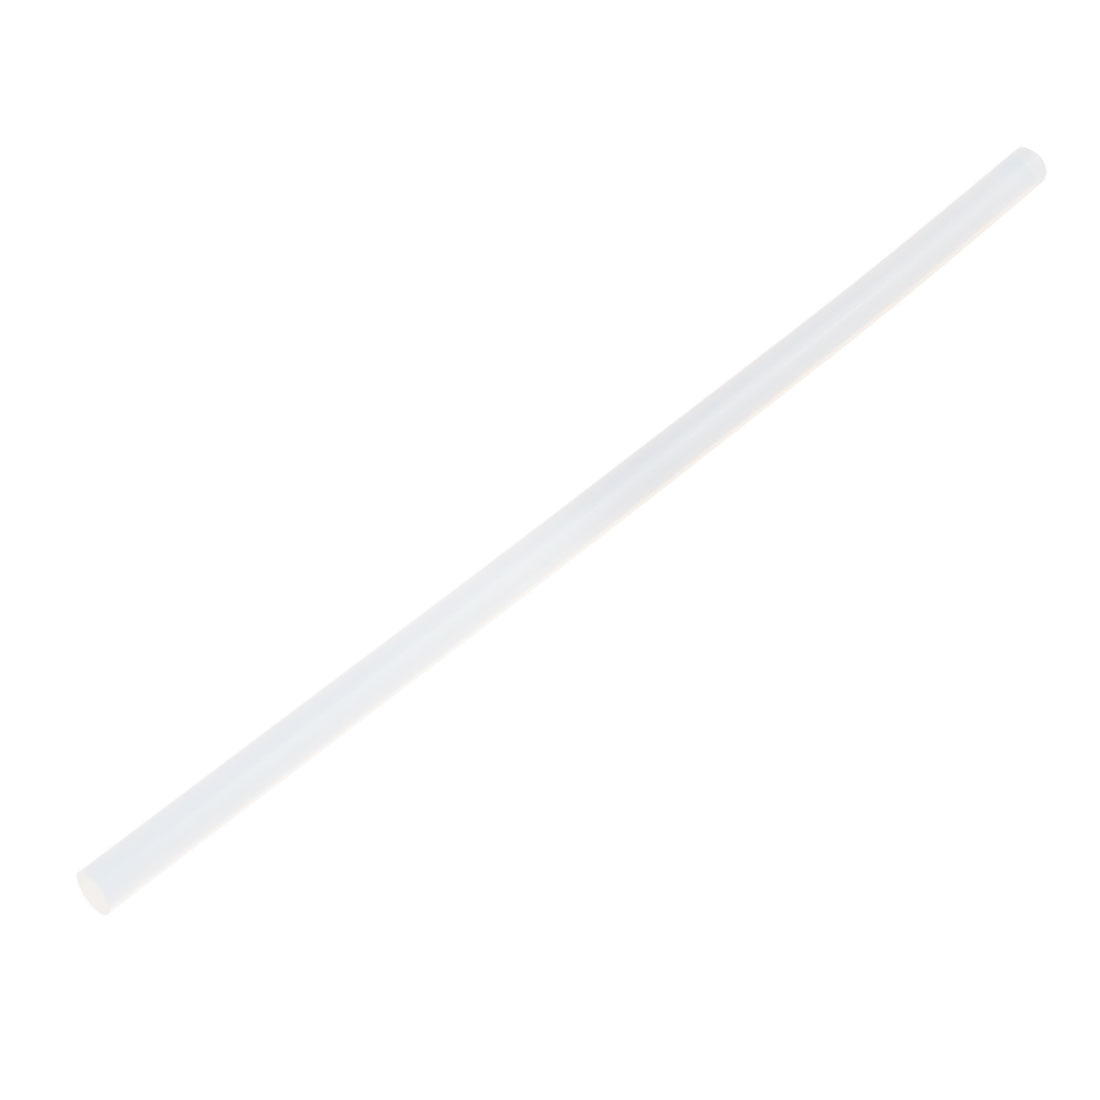 7mm x 200mm Hot Melt Glue Adhesive Stick Clear for Electric Tool Heating Gun